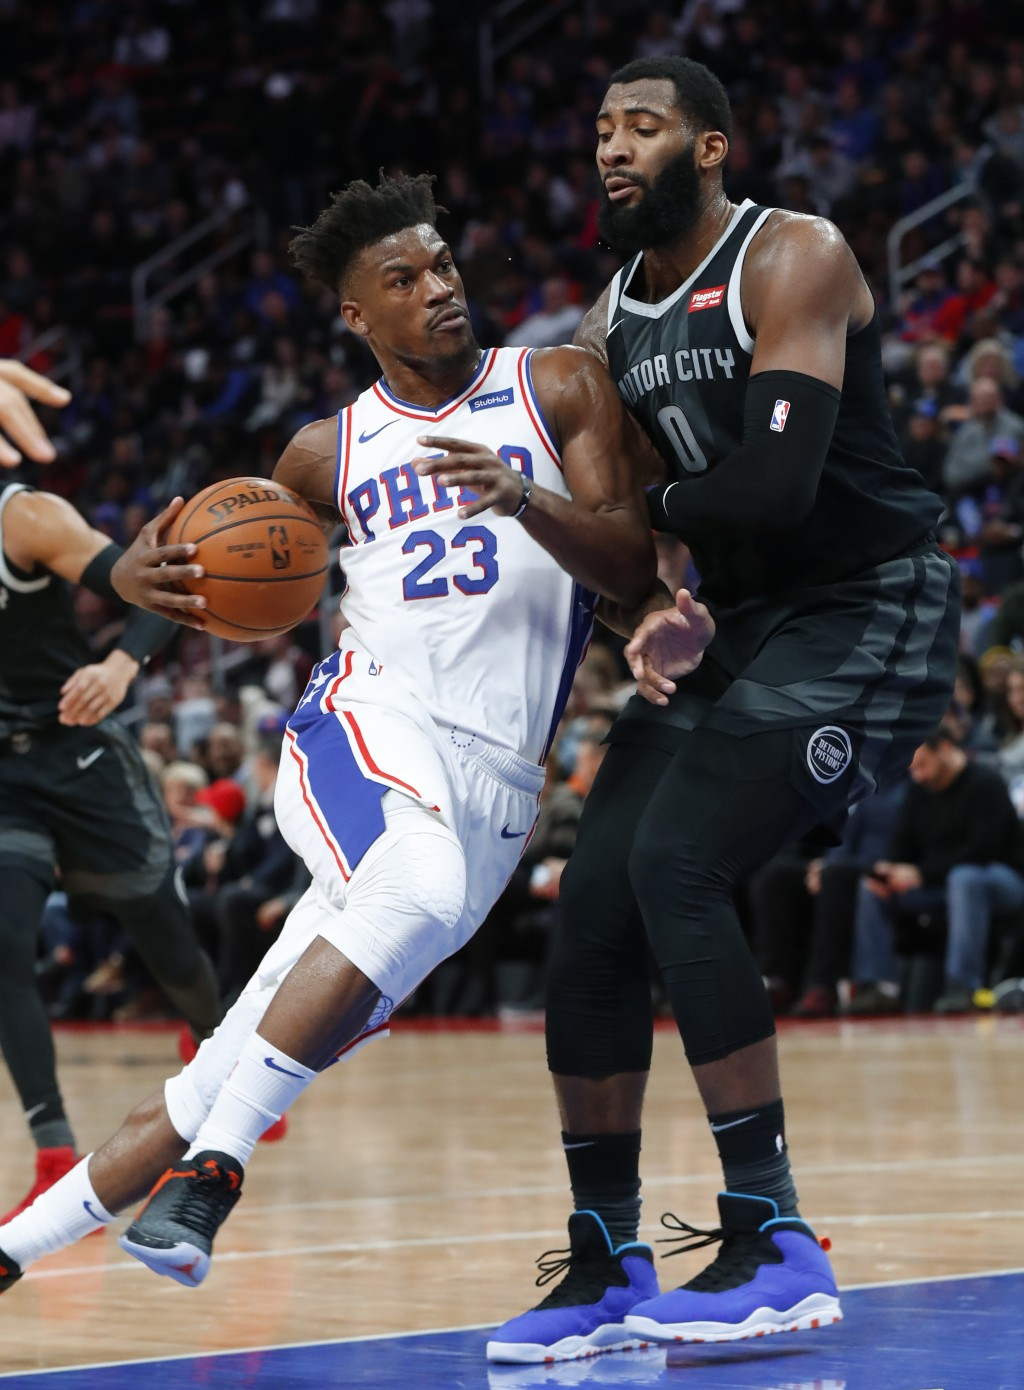 Philadelphia 76ers guard Jimmy Butler (23) drives against Detroit Pistons center Andre Drummond (0) in the second half of an NBA basketball game in De